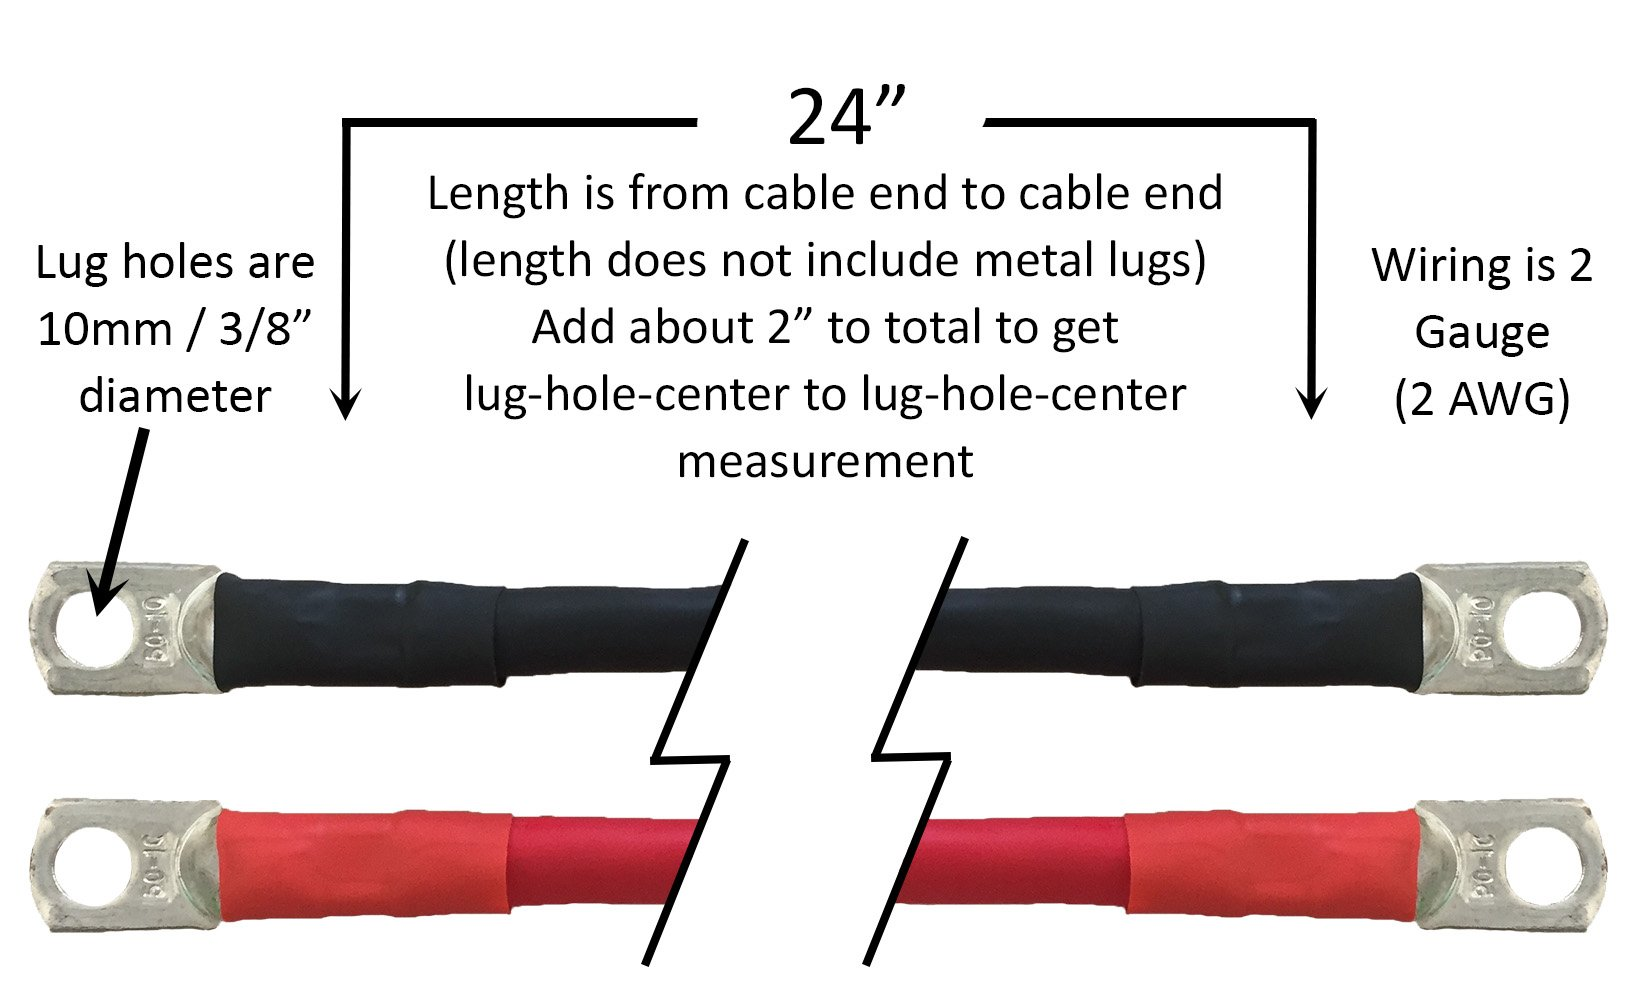 Truck Upfitters 24'' Pair of 2 AWG Black & Red Power Cables for Inverters, Solar Panels, Car, Truck, RV, and Marine Applications